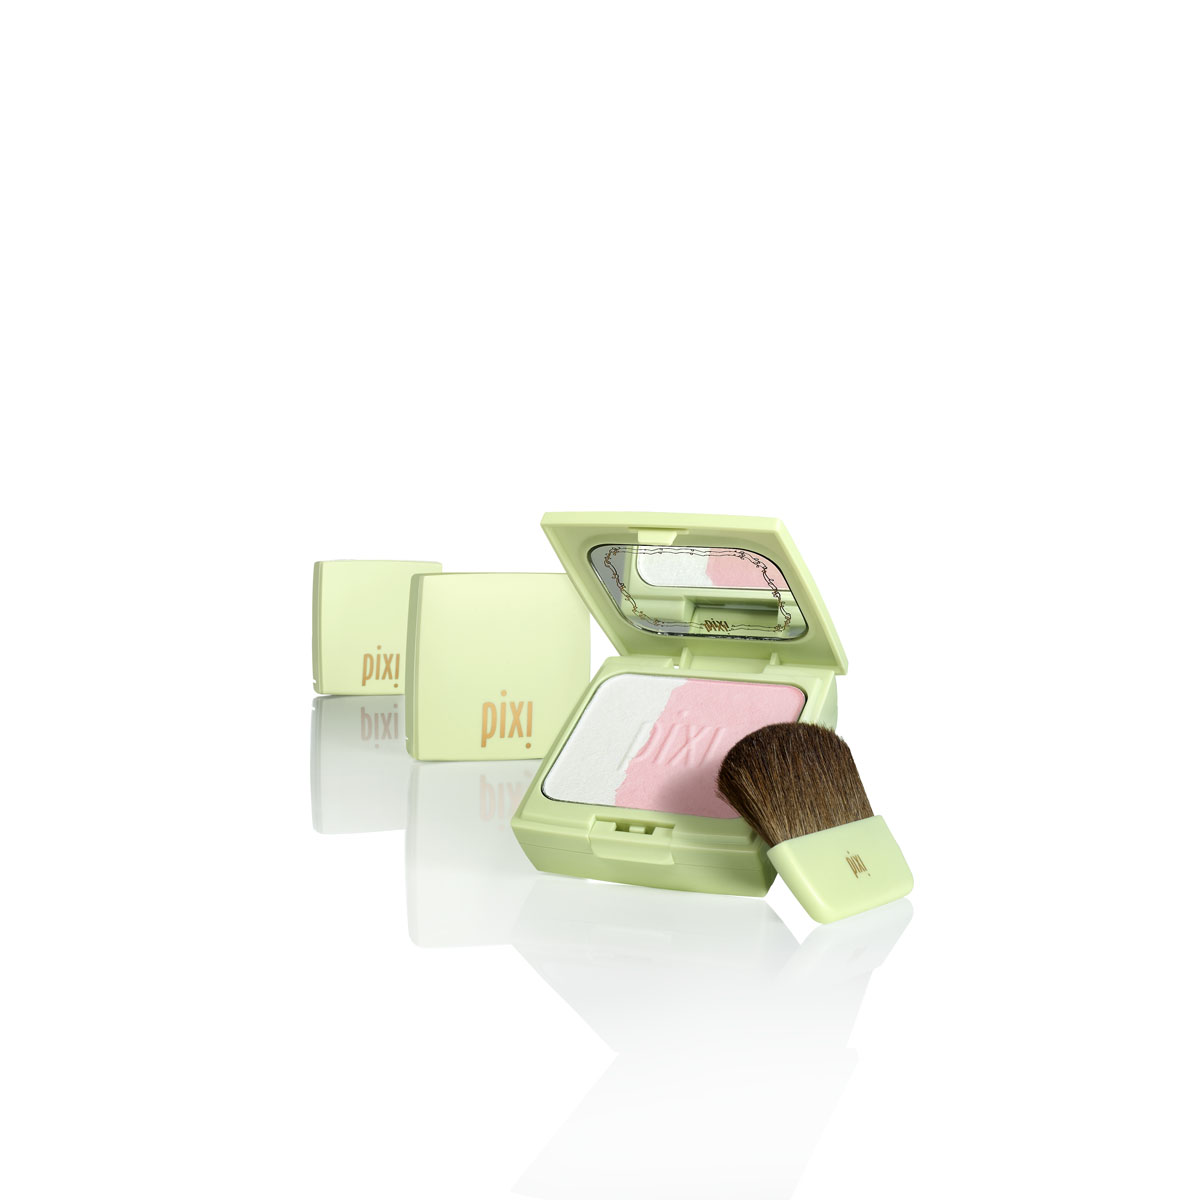 Pixi by Petra Energy Blush ($21) — brightens you up.